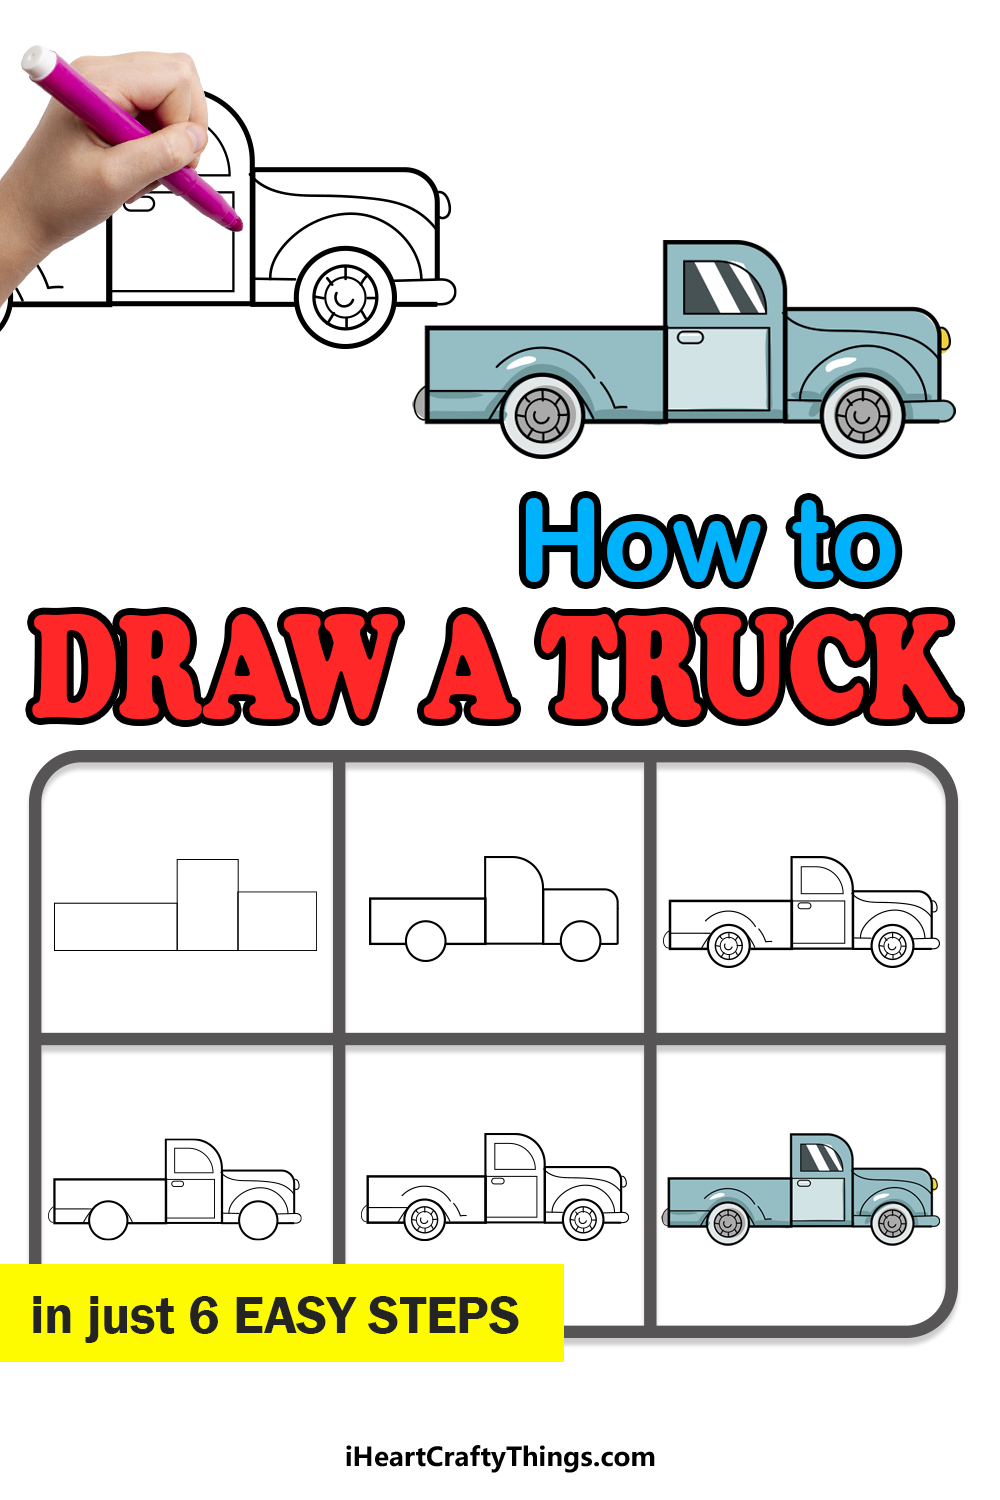 how to draw a truck in 6 easy steps